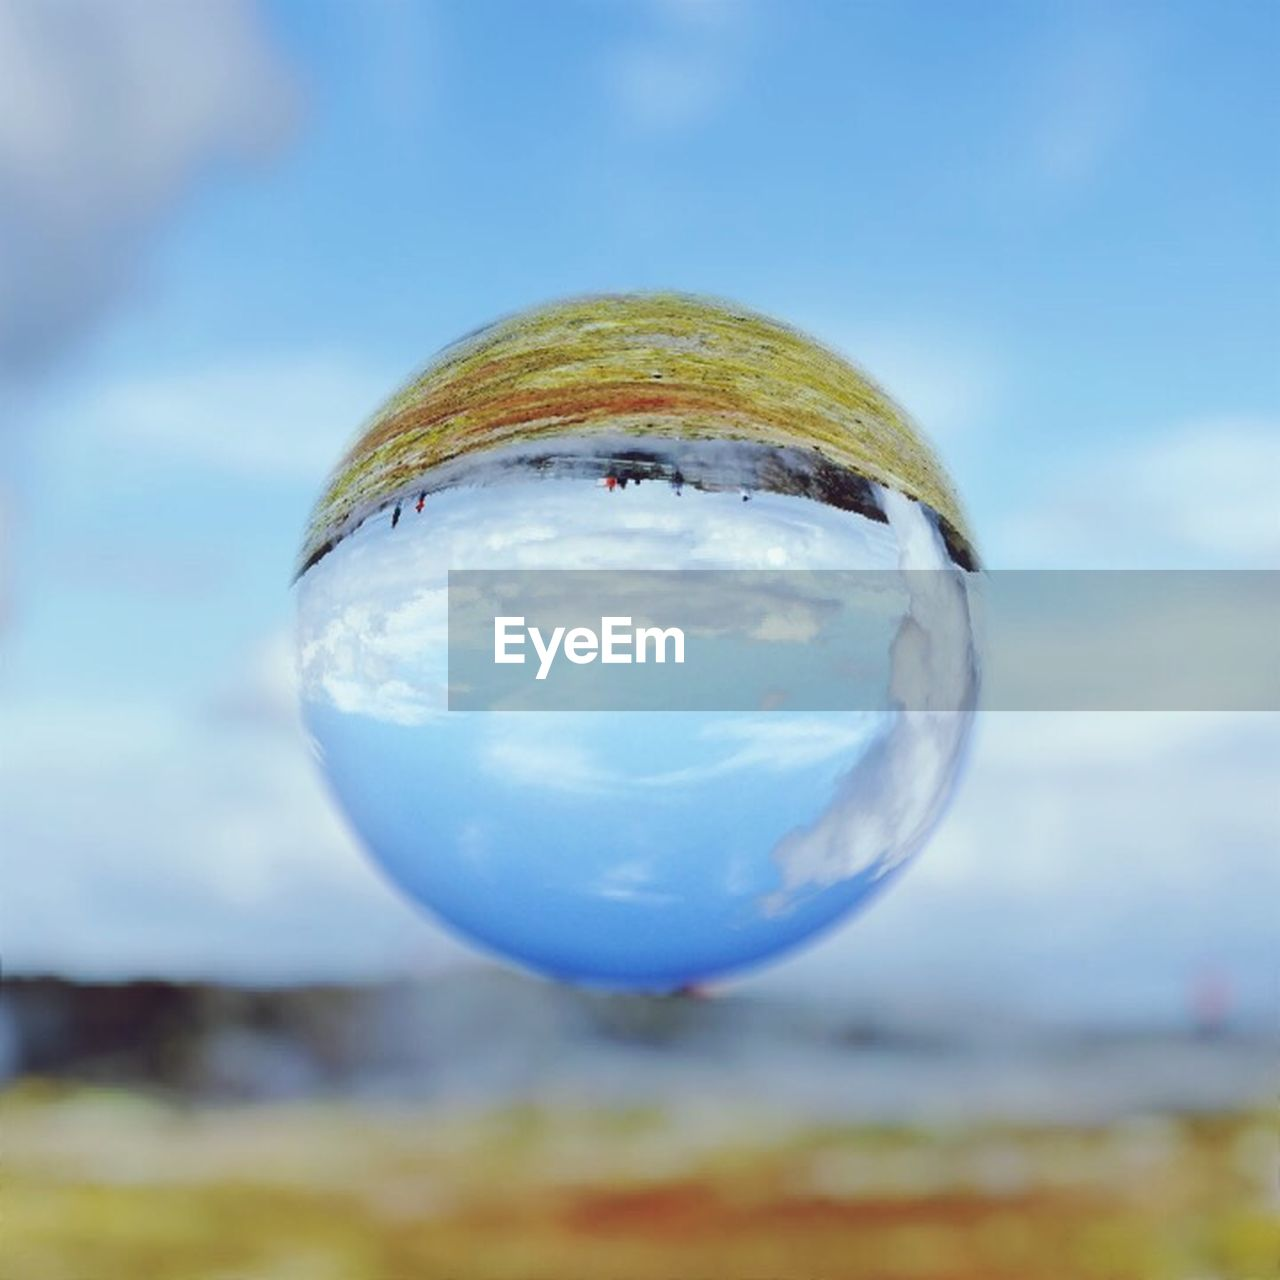 sphere, crystal ball, close-up, focus on foreground, single object, no people, crystal, sky, shiny, ball, blue, outdoors, marbles, fragility, day, bubble wand